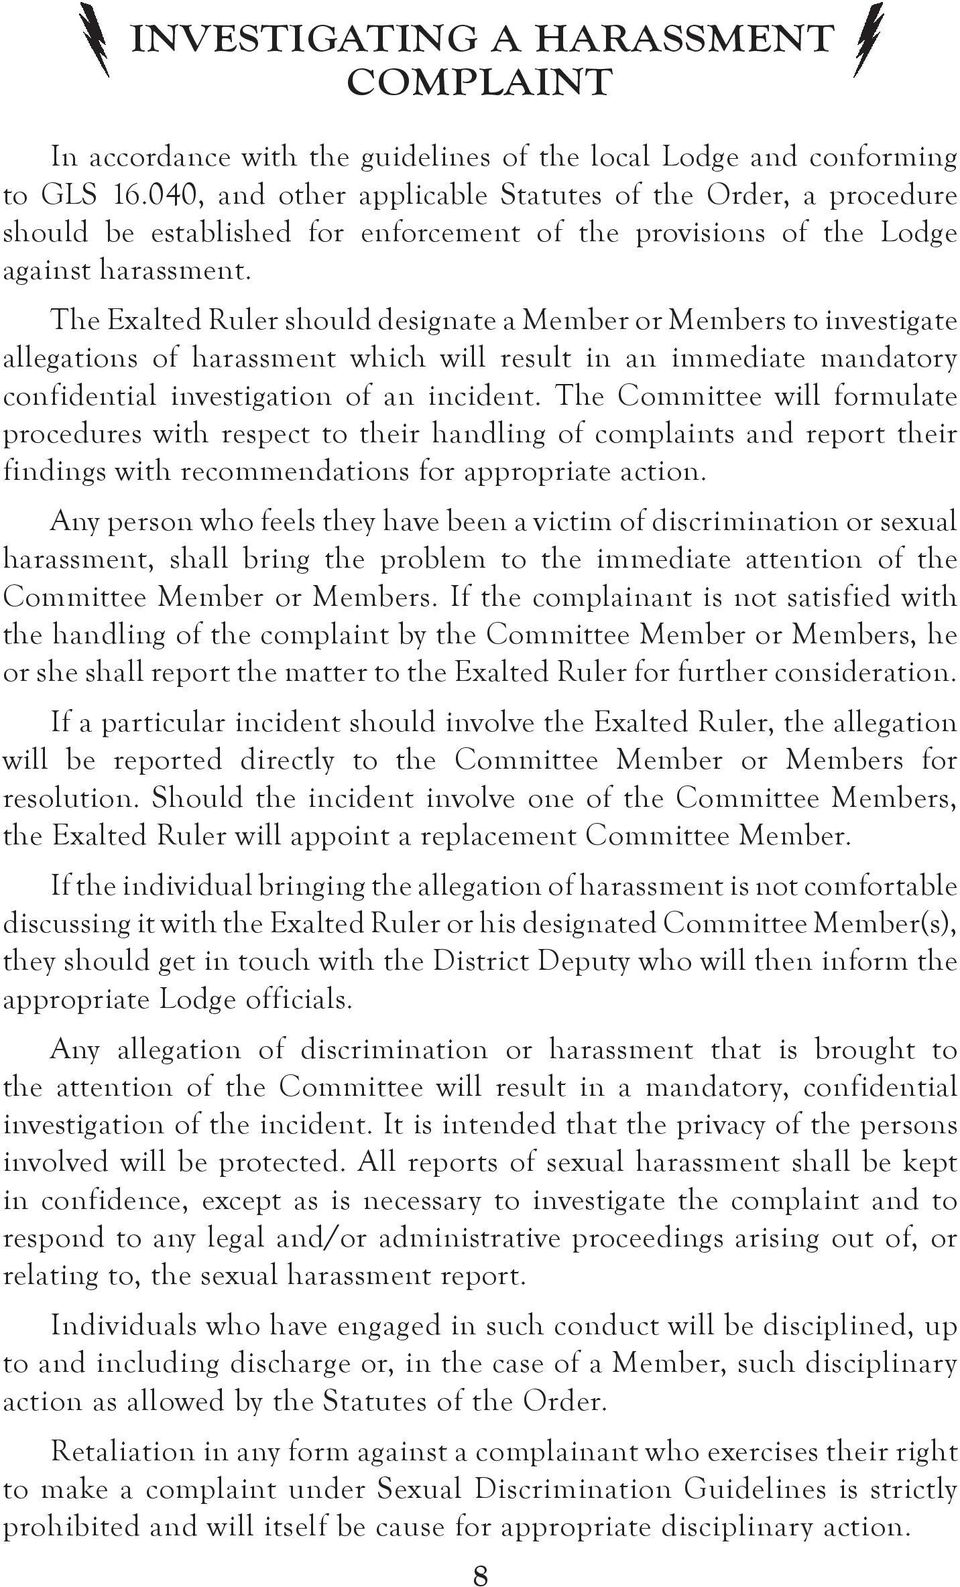 The Exalted Ruler should designate a Member or Members to investigate allegations of harassment which will result in an immediate mandatory confidential investigation of an incident.